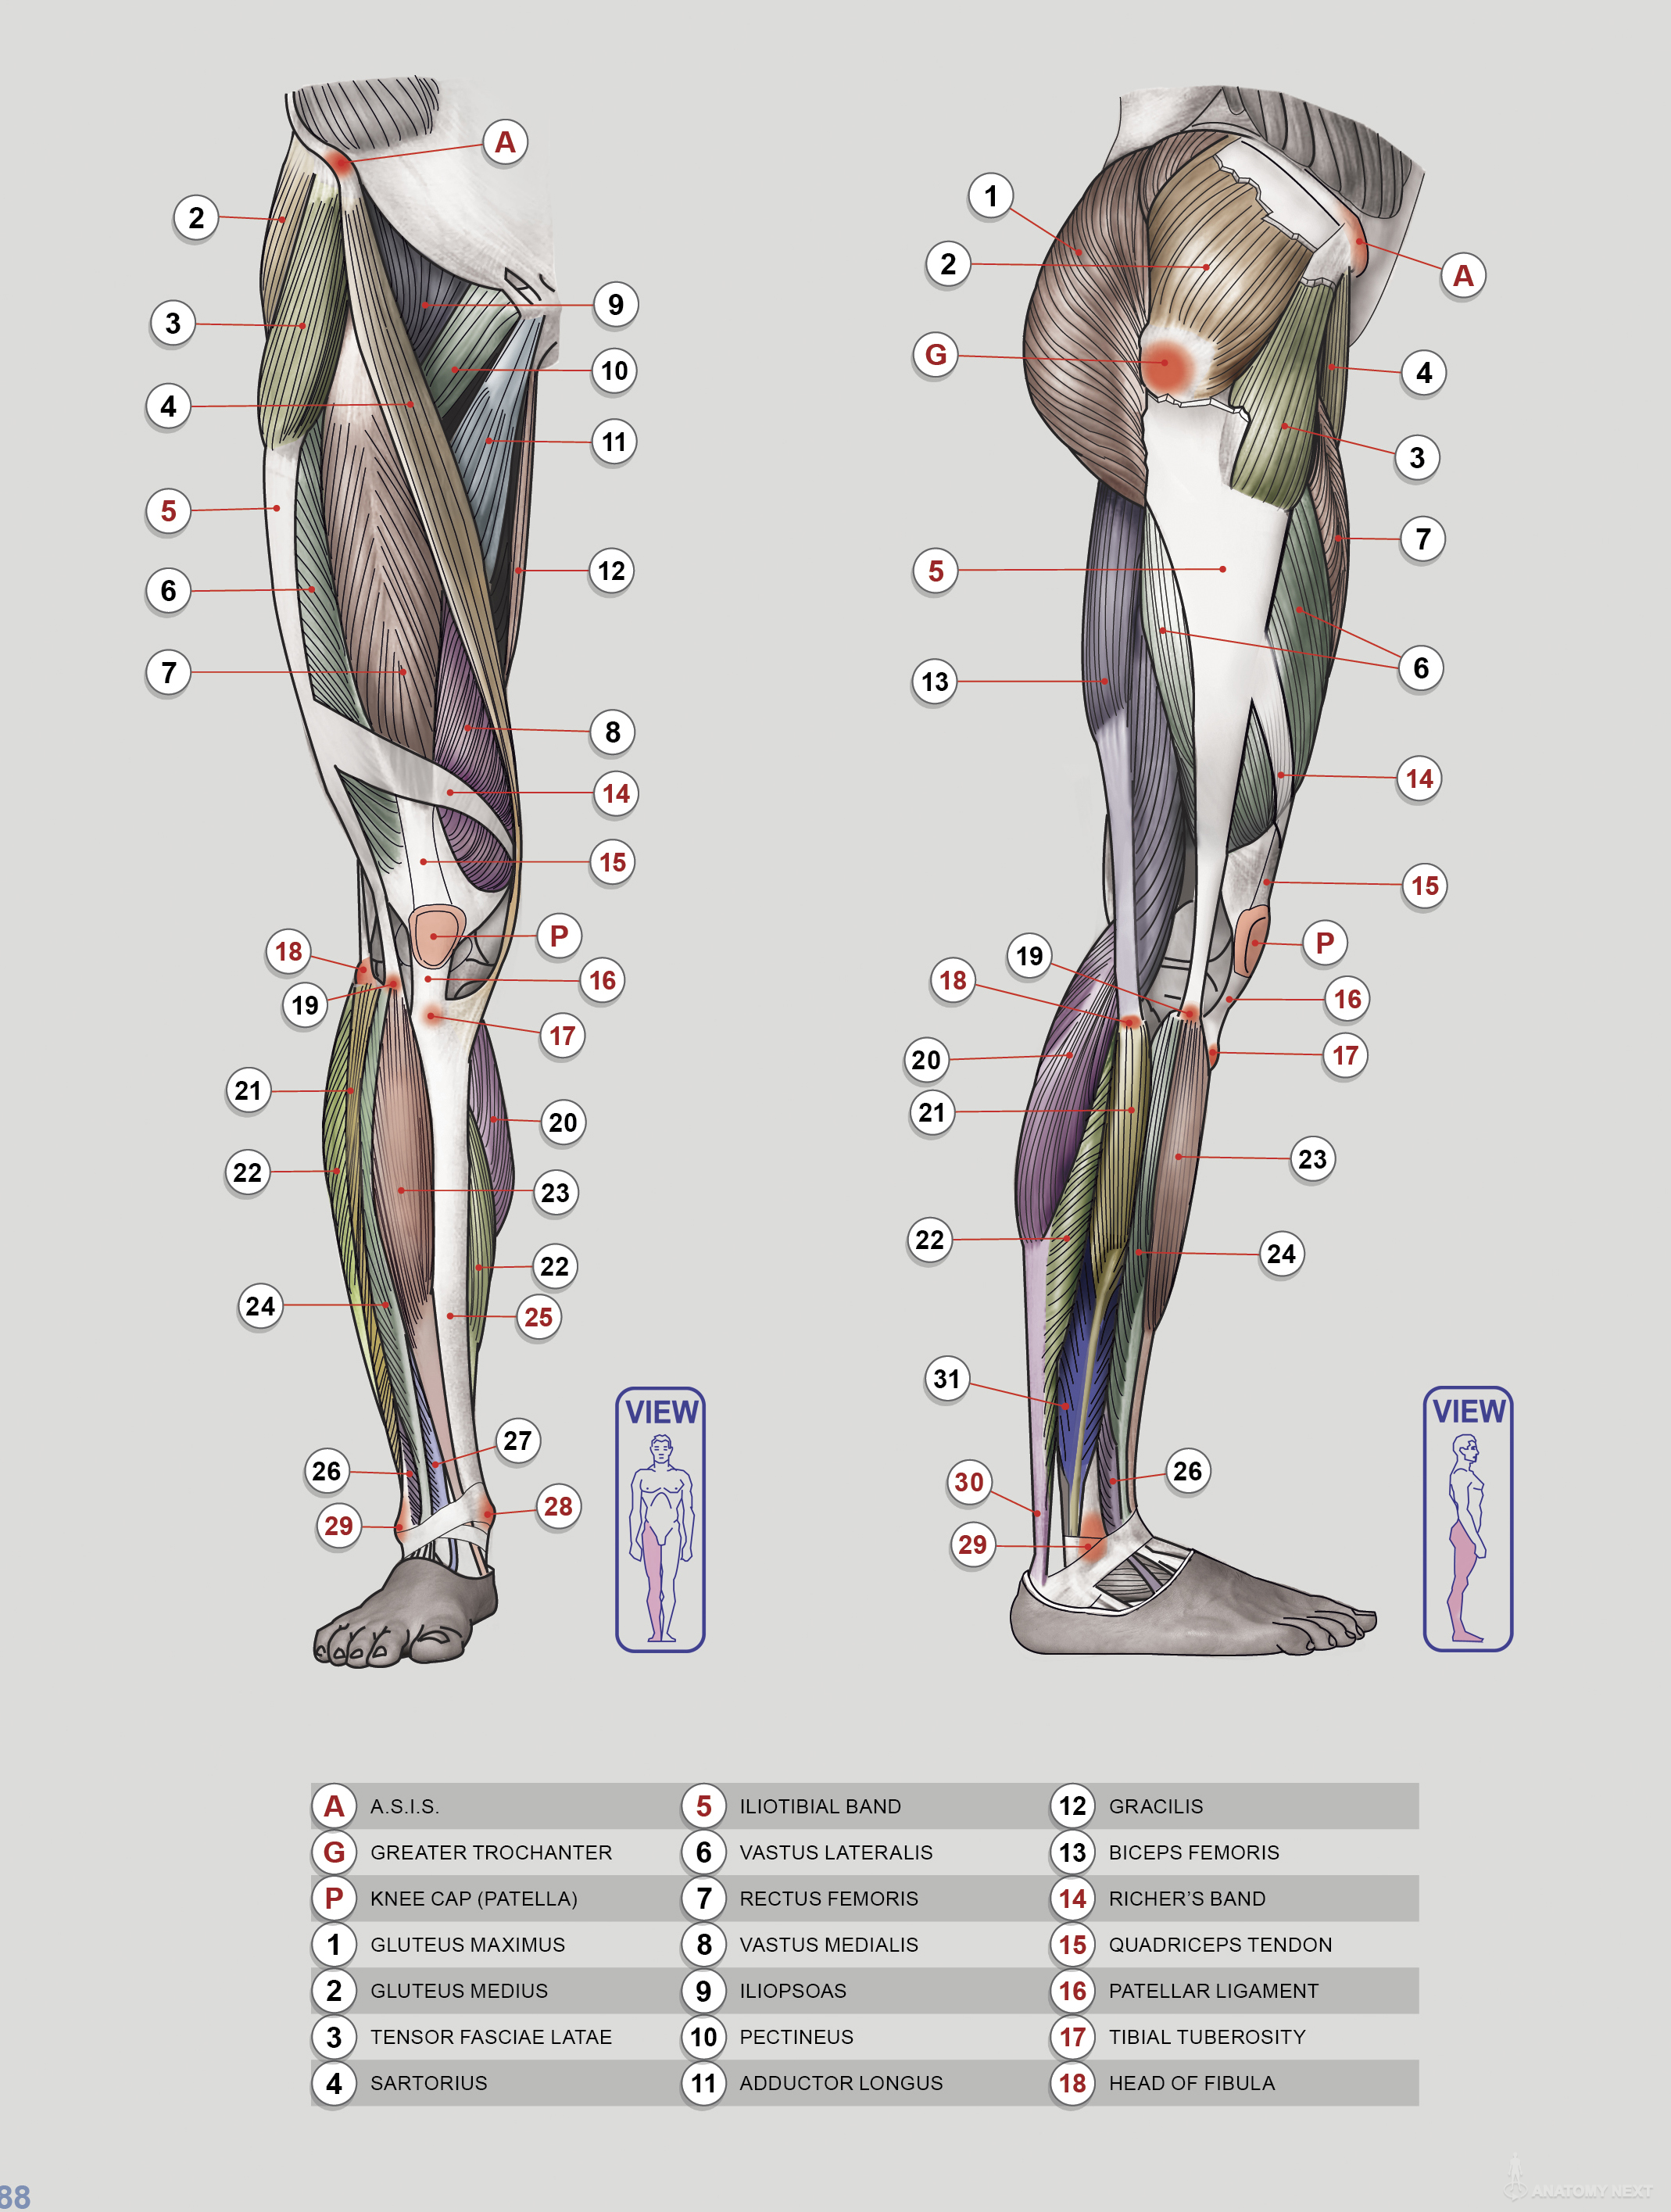 Anatomy Next - Anatomy of Lower limb: Anatomy & features | Anatomy ...